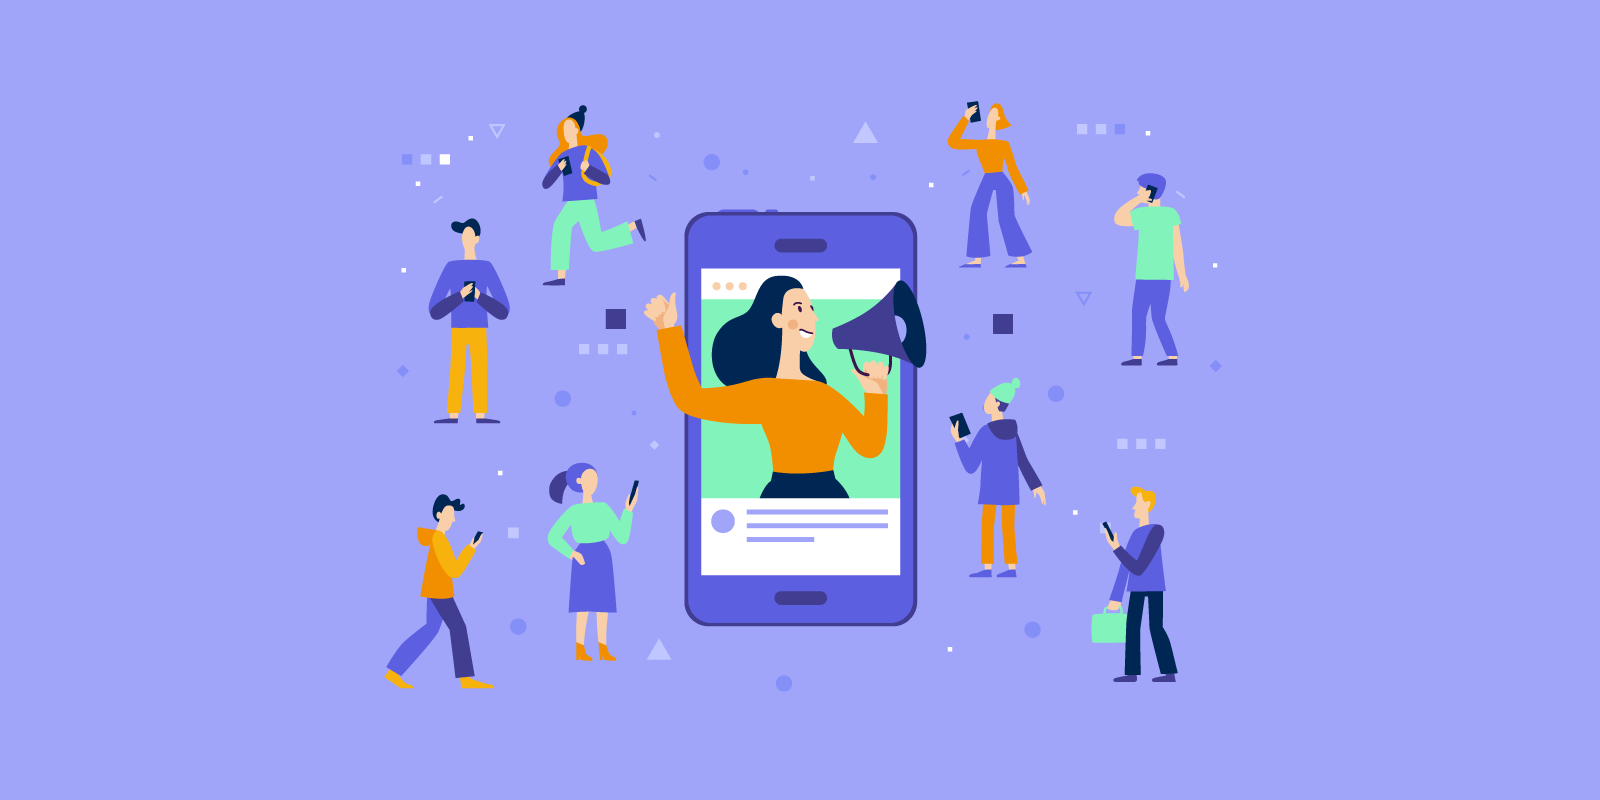 Illustration of woman inside a smart phone using a megaphone with various people looking at their phones.